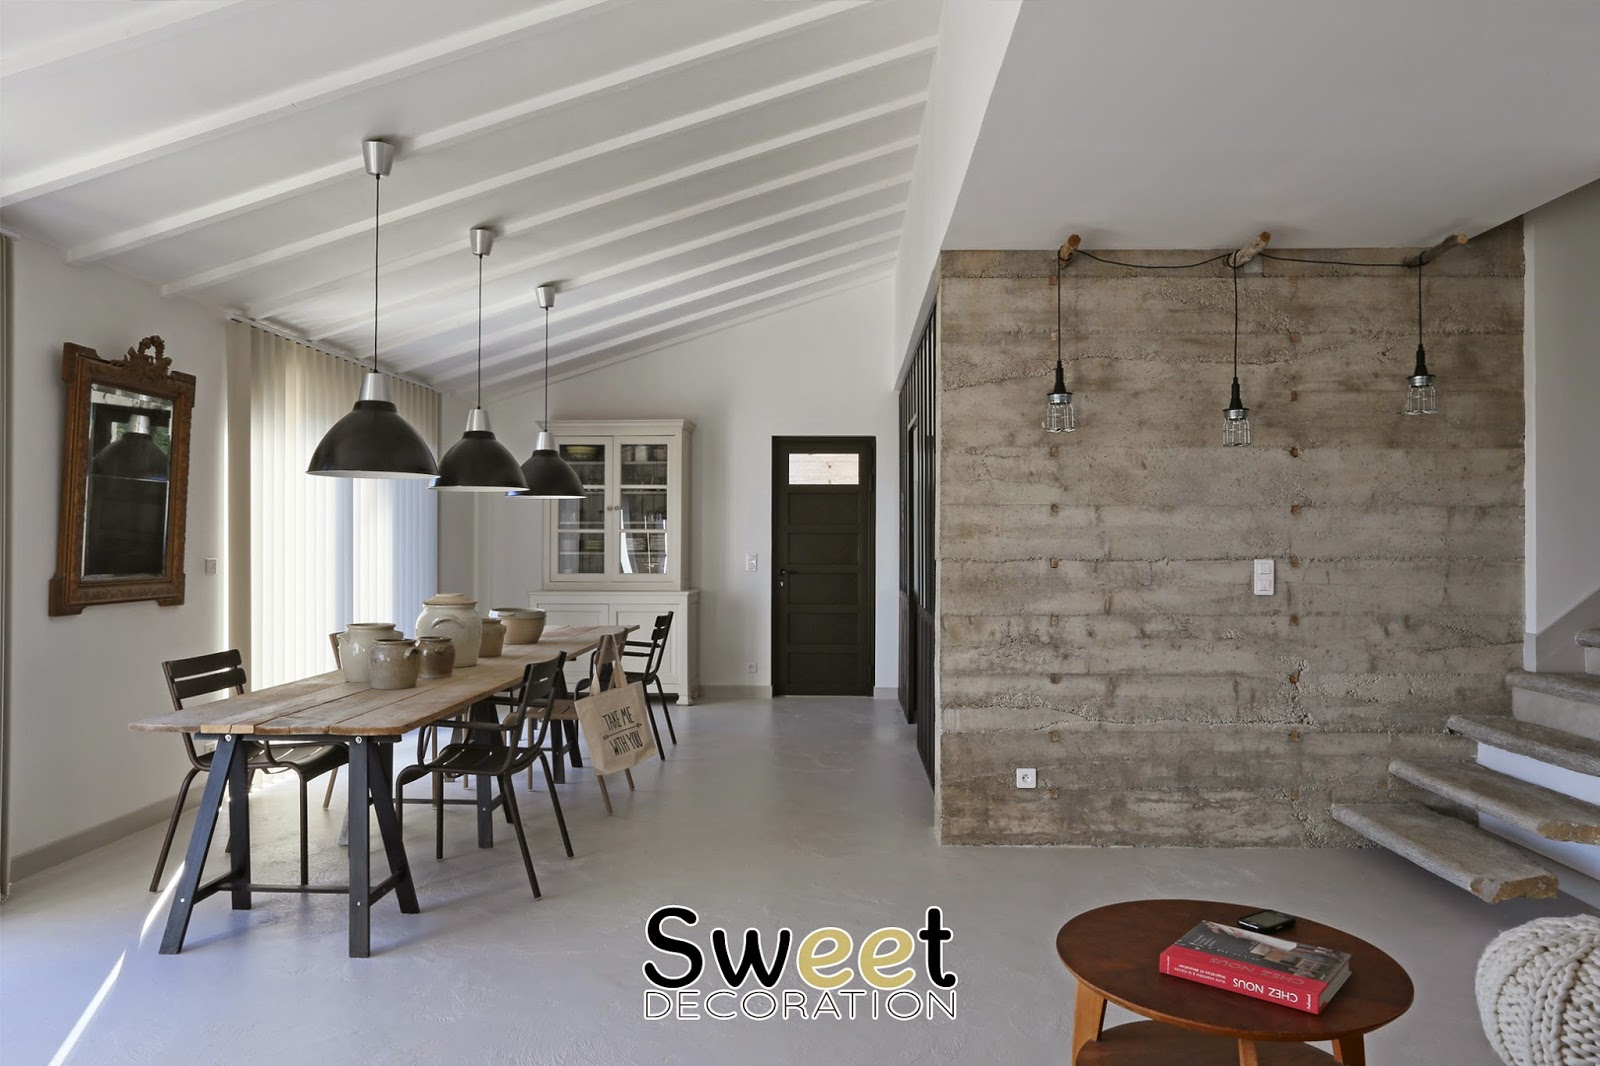 Am nagement int rieur d 39 une maison contemporaine sweet for Amenagement interieur de maison